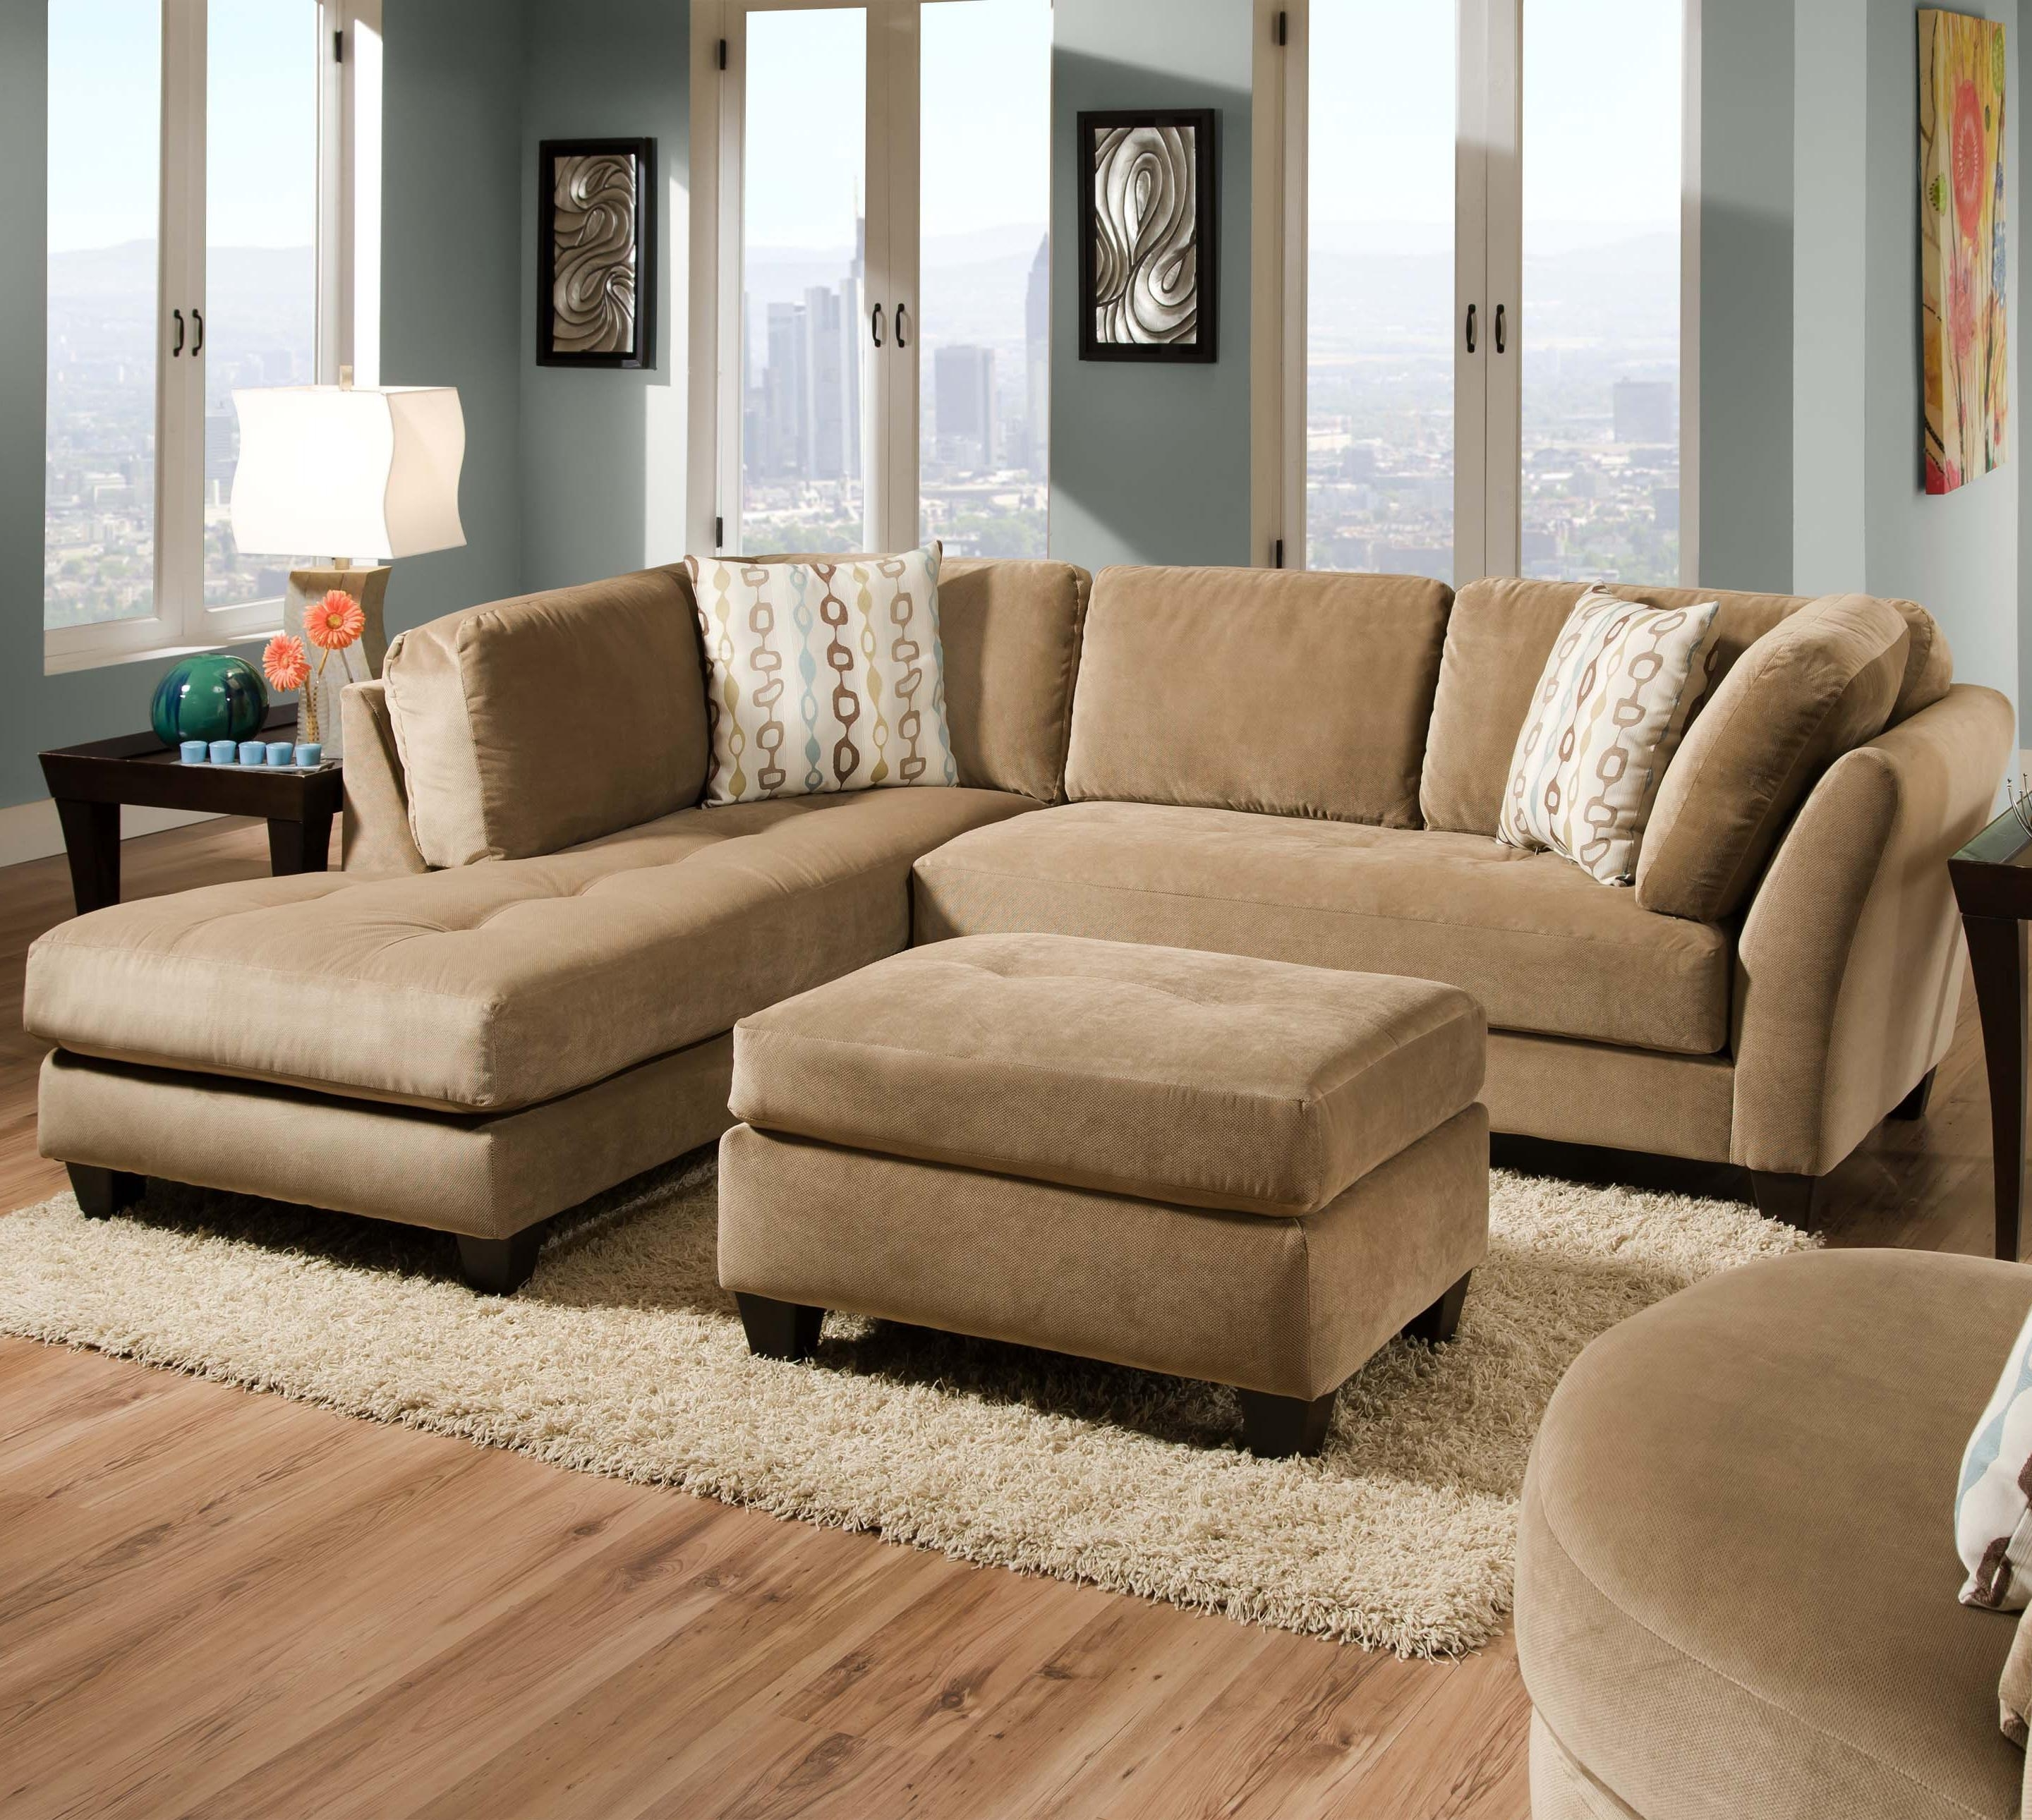 35b Slugger Mocha 2 Piece Sectionalcorinthian – Great American Within Favorite Memphis Sectional Sofas (View 19 of 20)